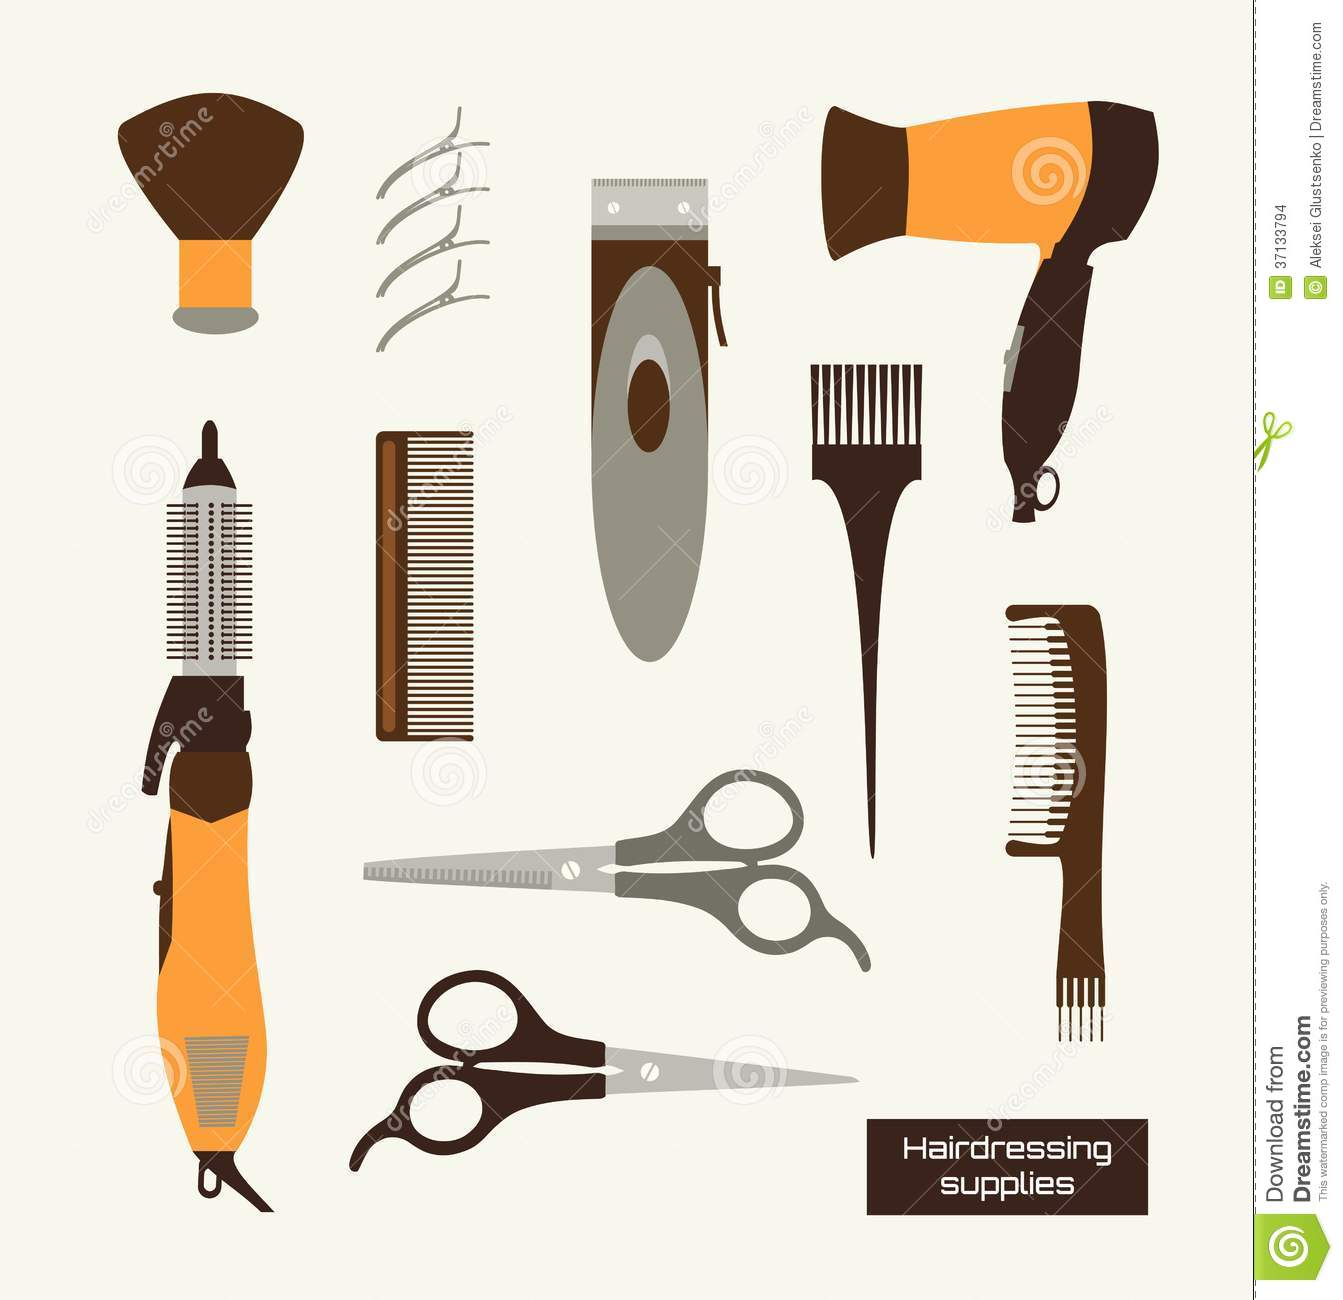 Hairdressing Supplies Vector Illustracion Stock Vector